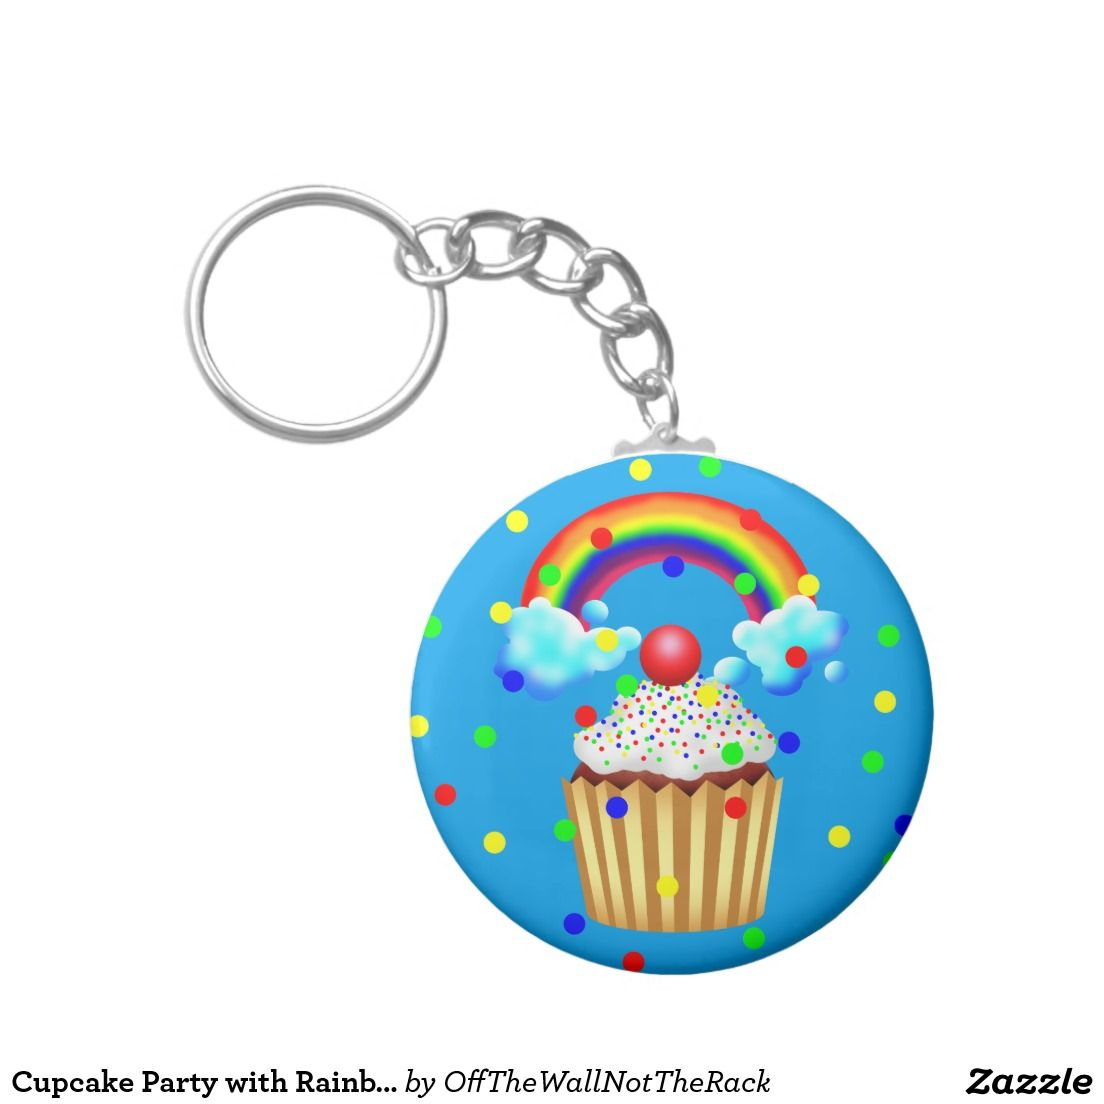 Cupcake Party with Rainbow & Sprinkles Keychain